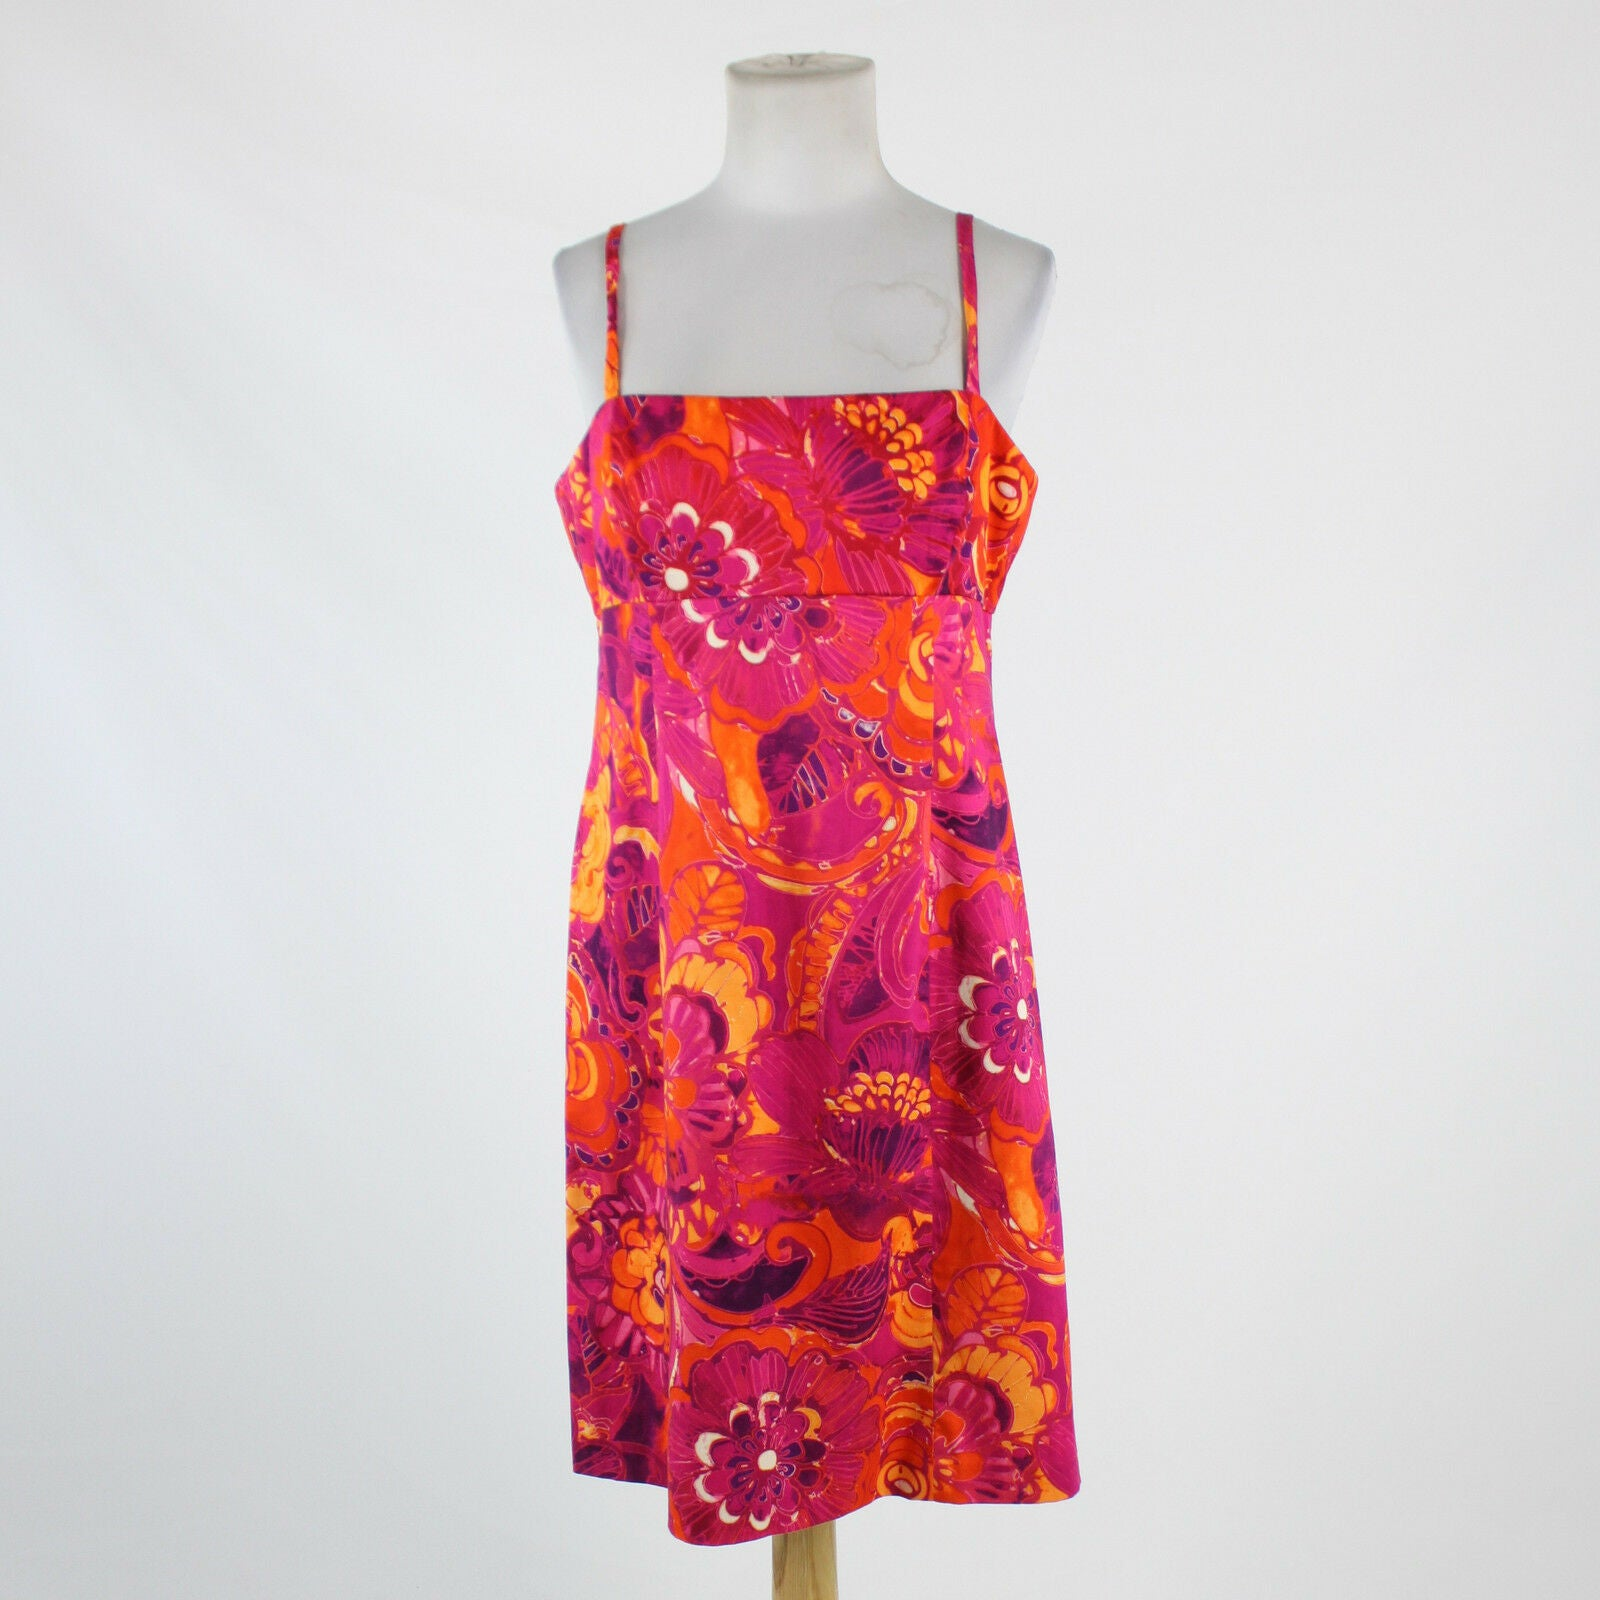 Fuchsia pink orange purple floral cotton EVAN PICONE spaghetti strap dress 12P